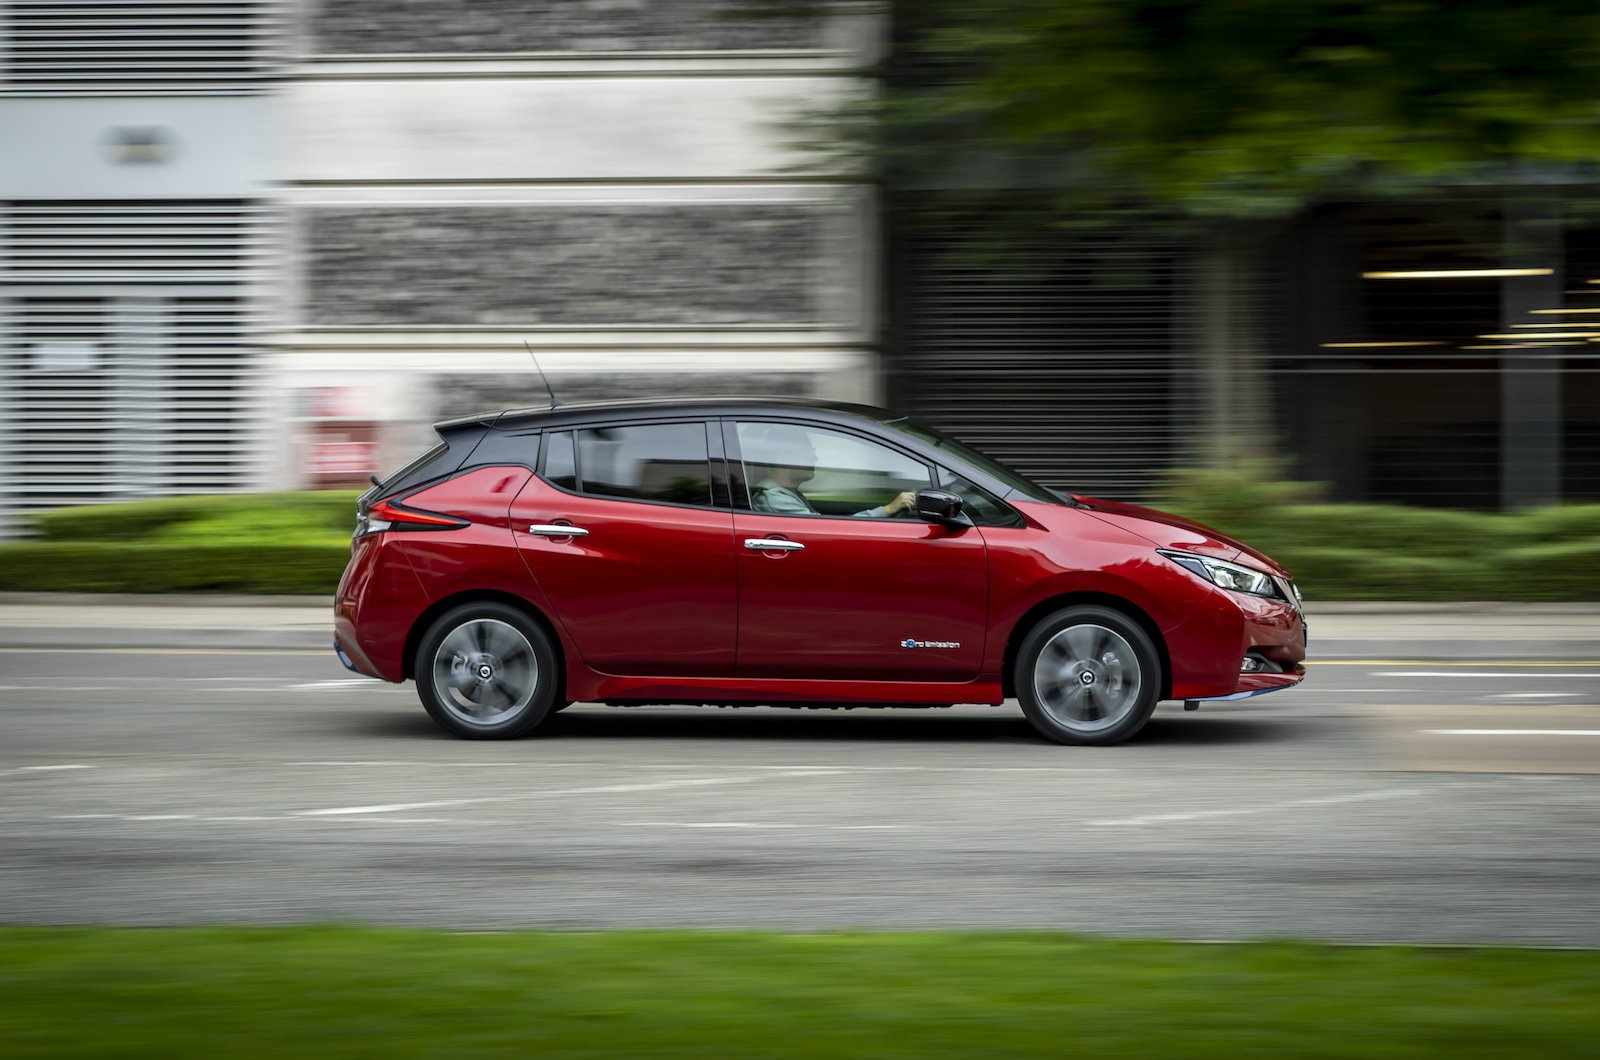 There are plenty of reasons why the all-electric Nissan LEAF is perfect as a family car